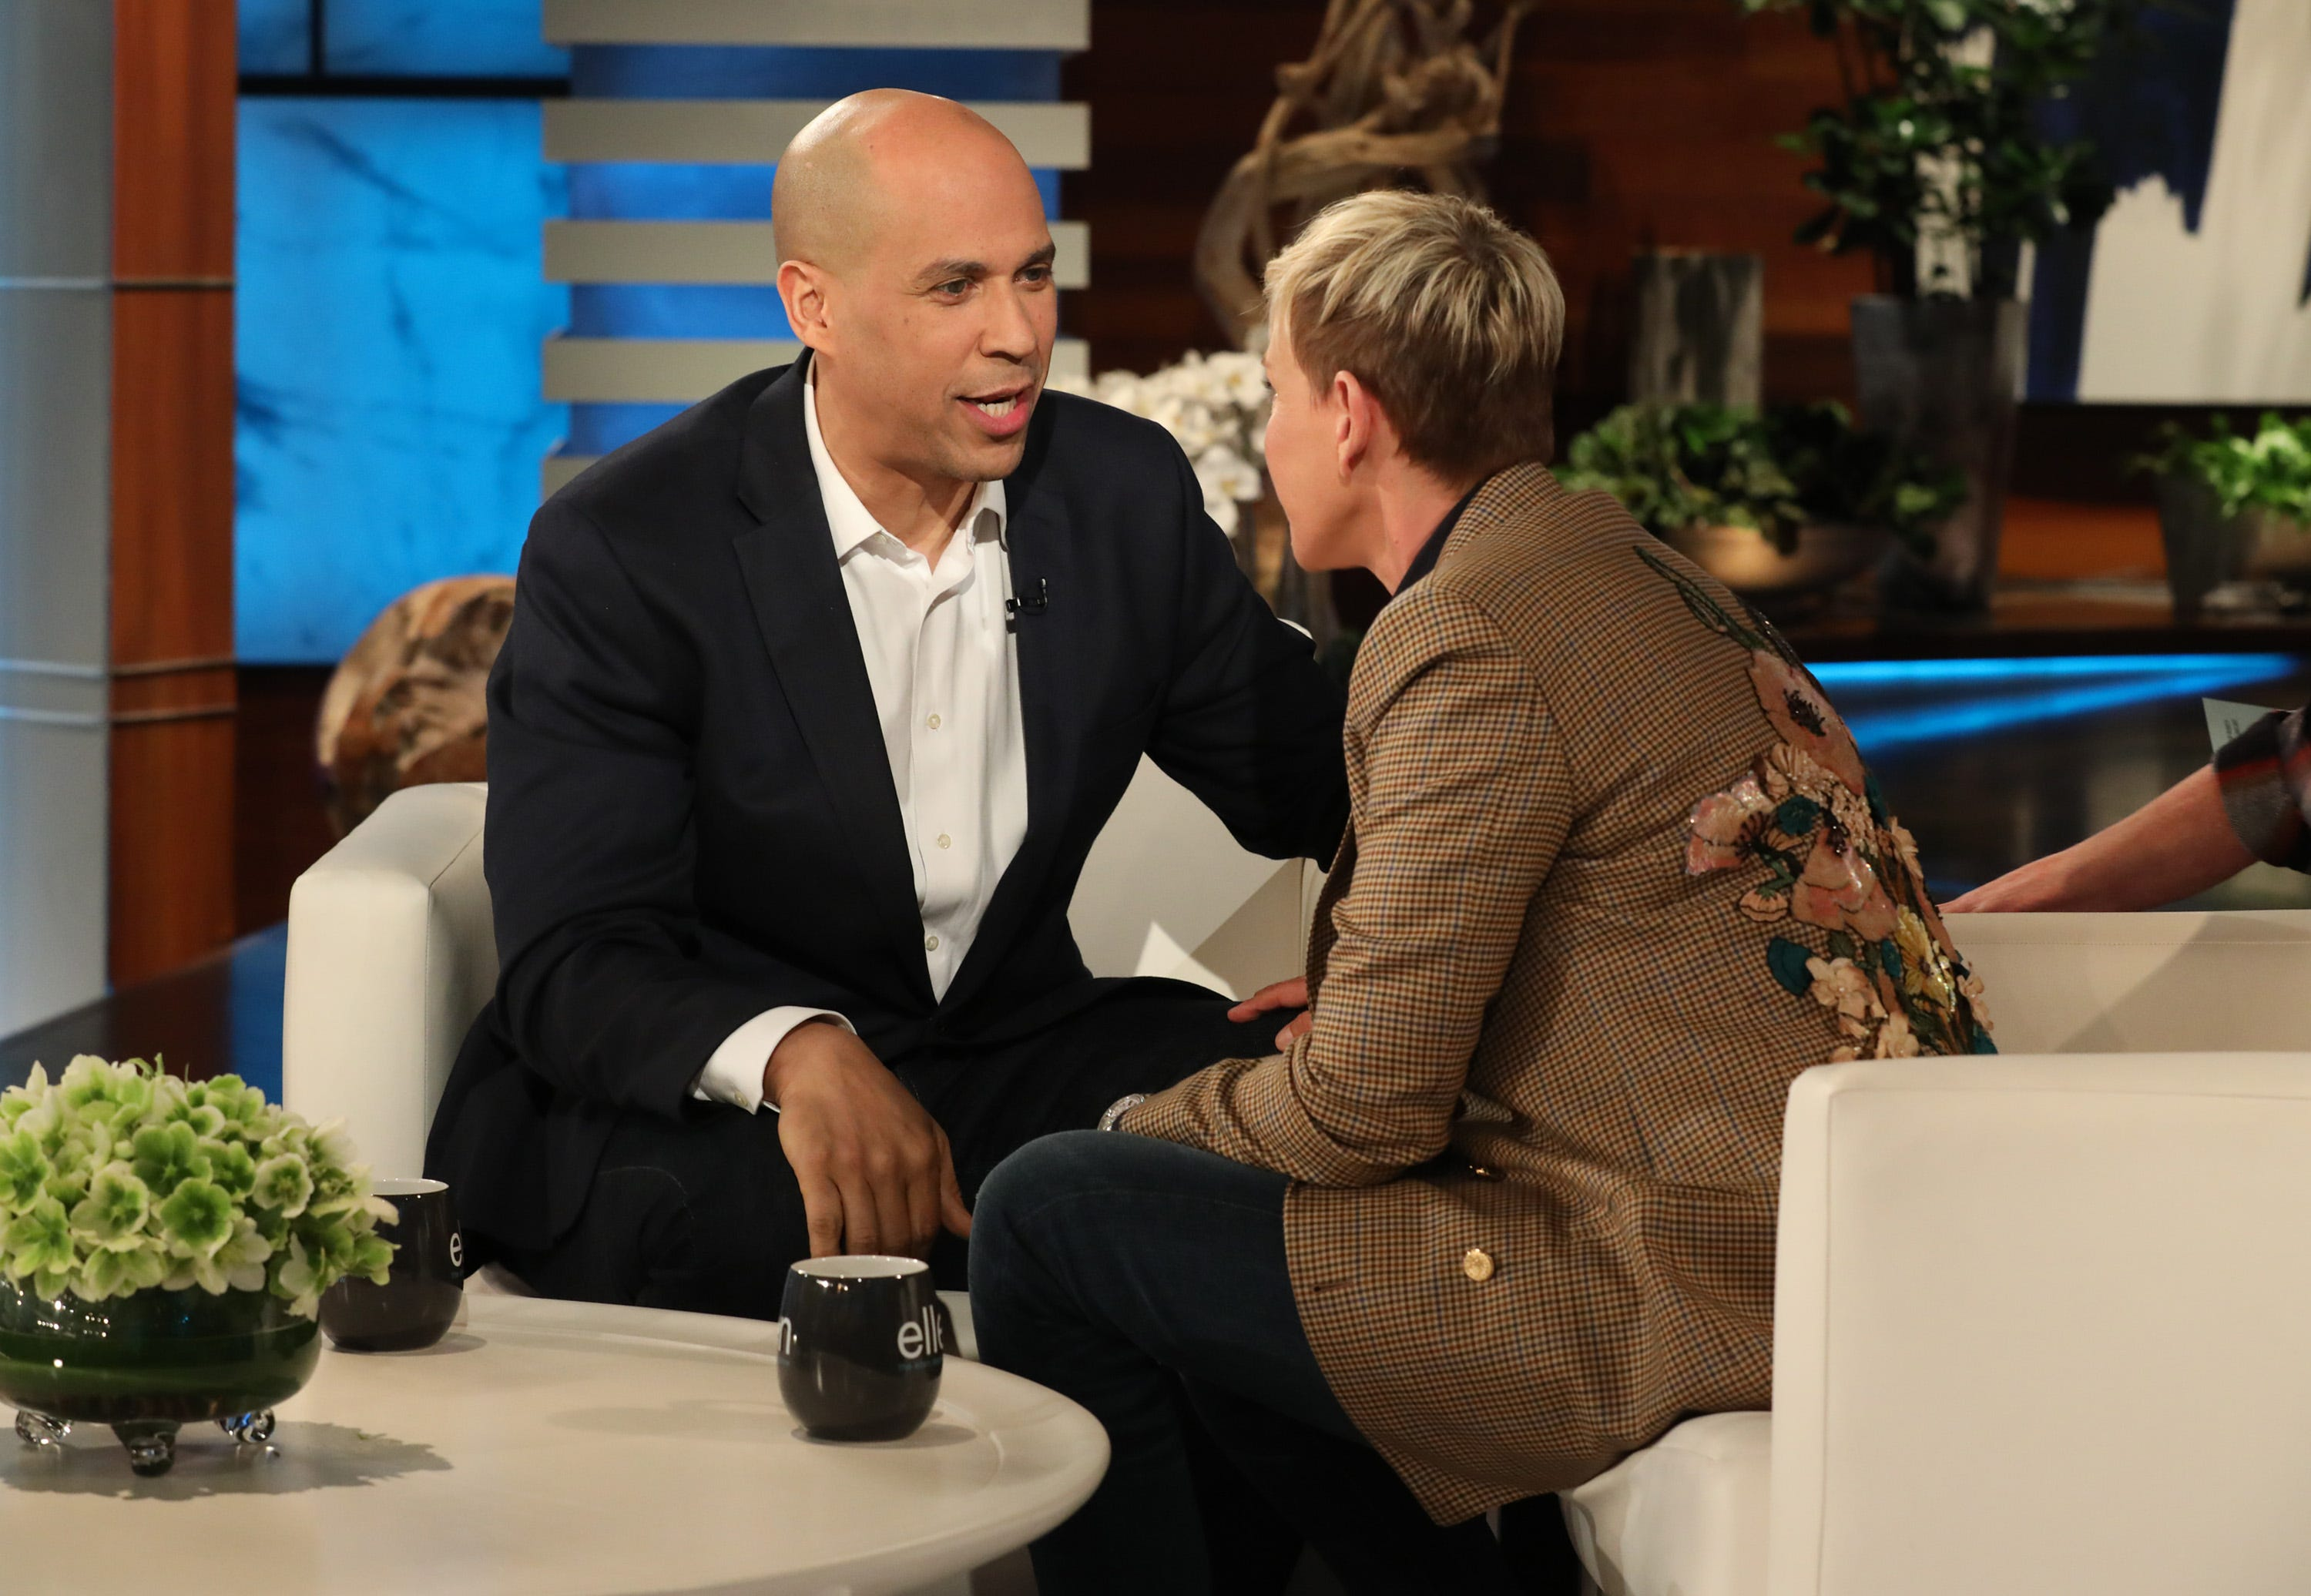 Cory Booker talks dating Rosario Dawson amid 2020 presidential race: 'People are watching'